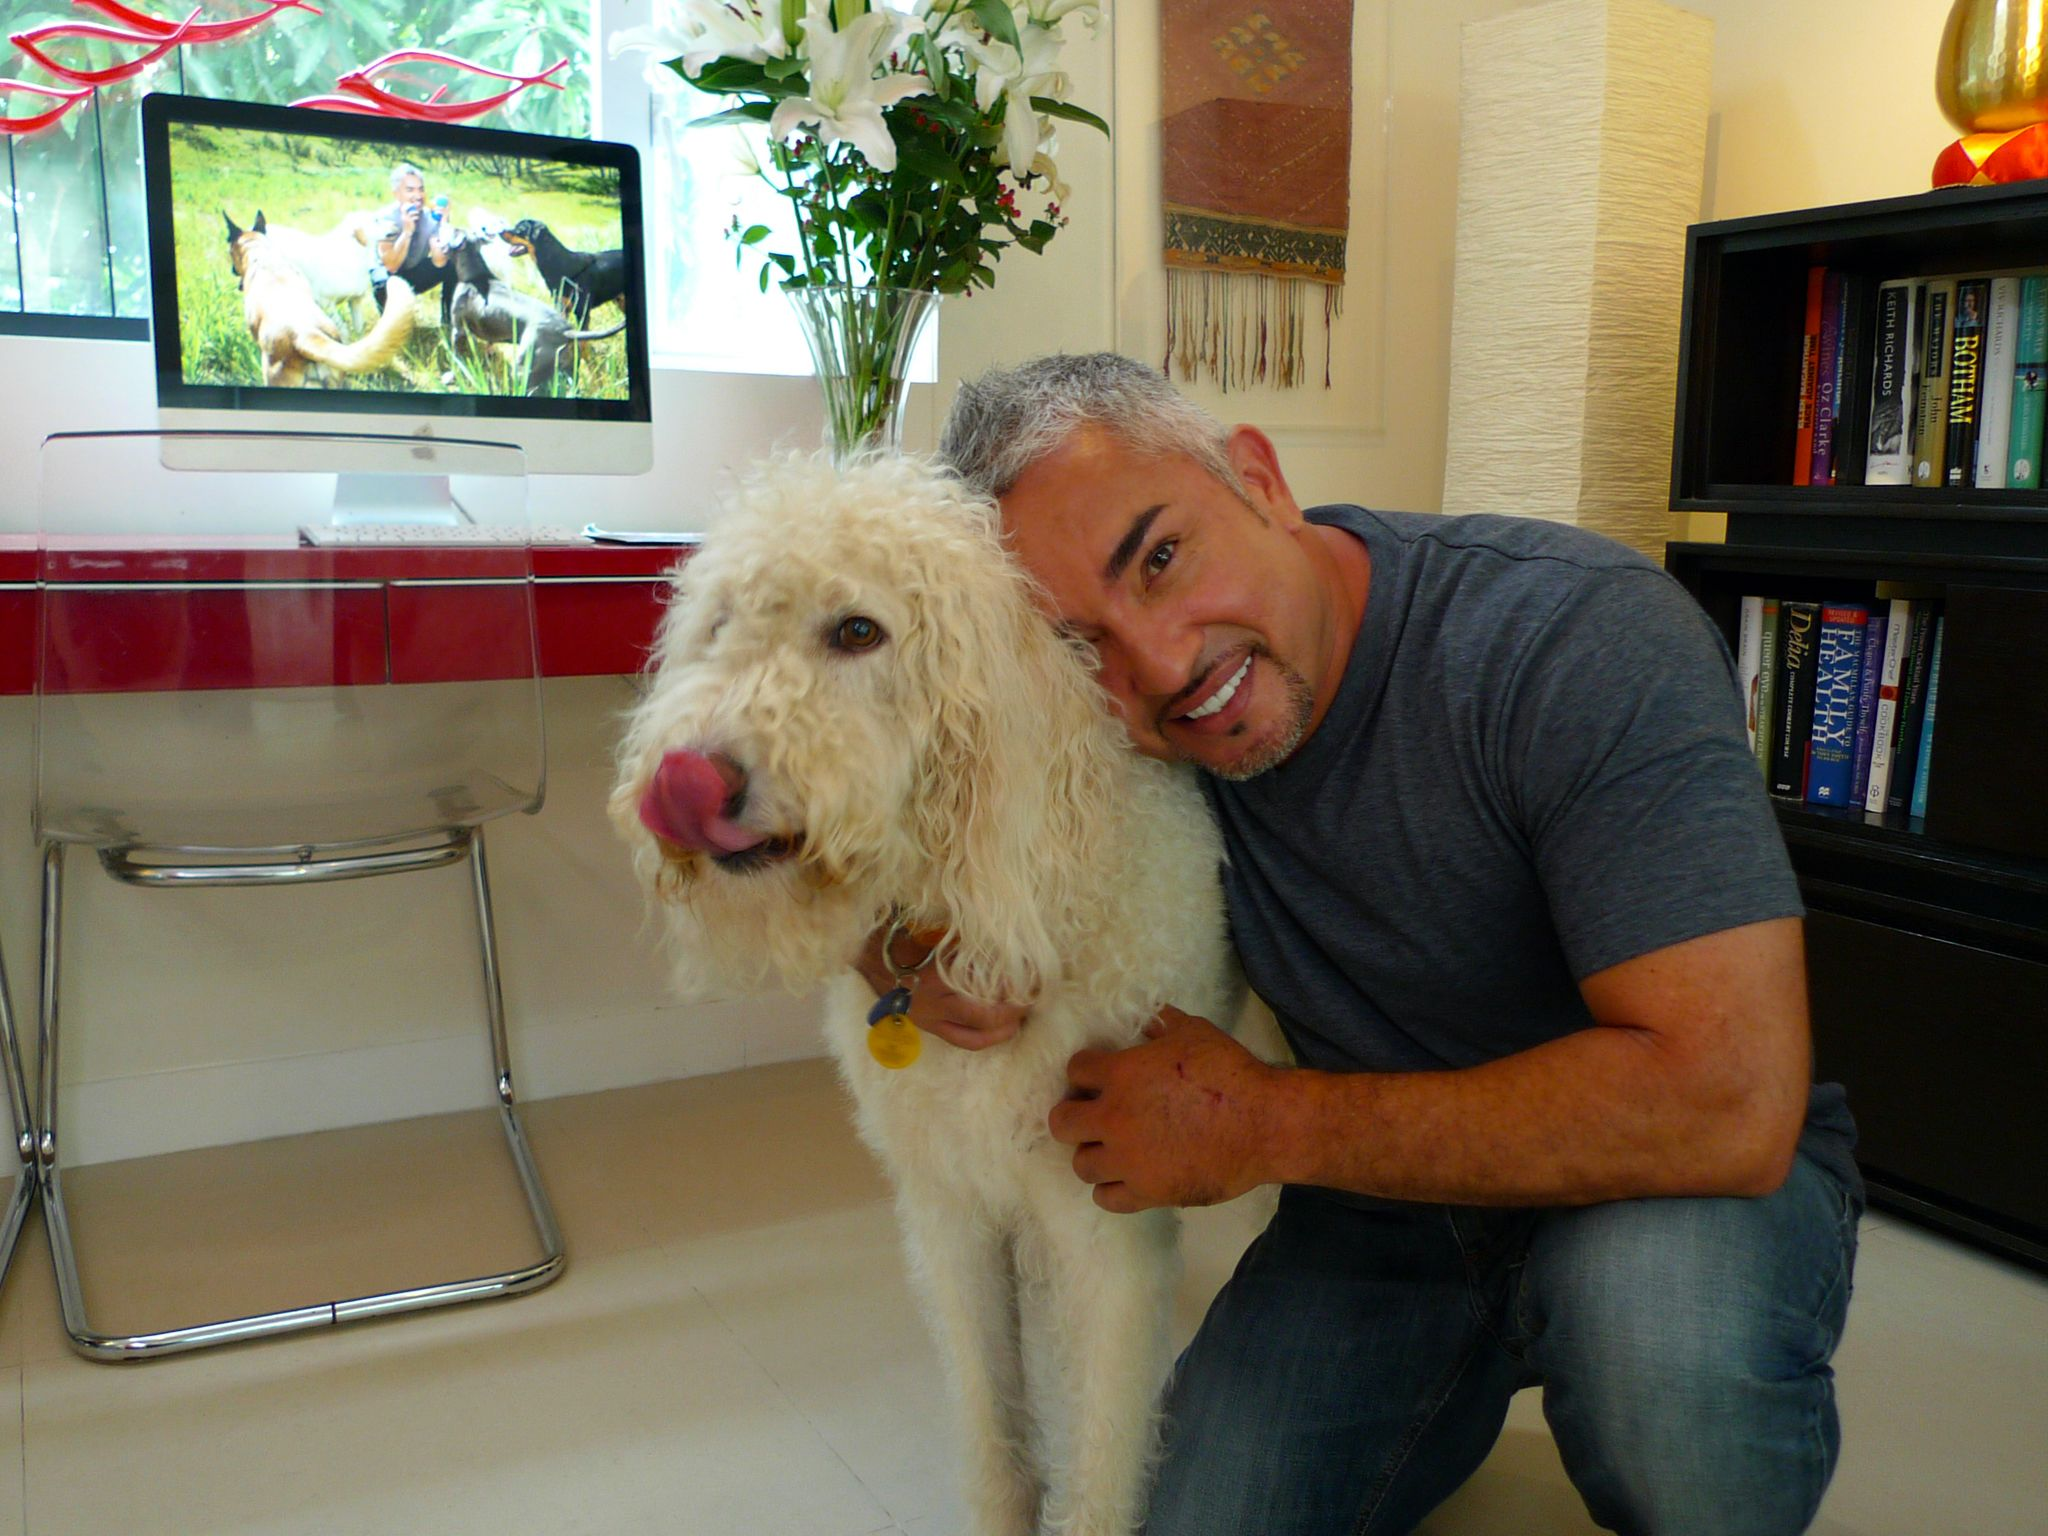 Hong Kong, China: Cesar poses with a dog. This image is from Cesar To The Rescue Asia. [Dagens foto - november 2014]